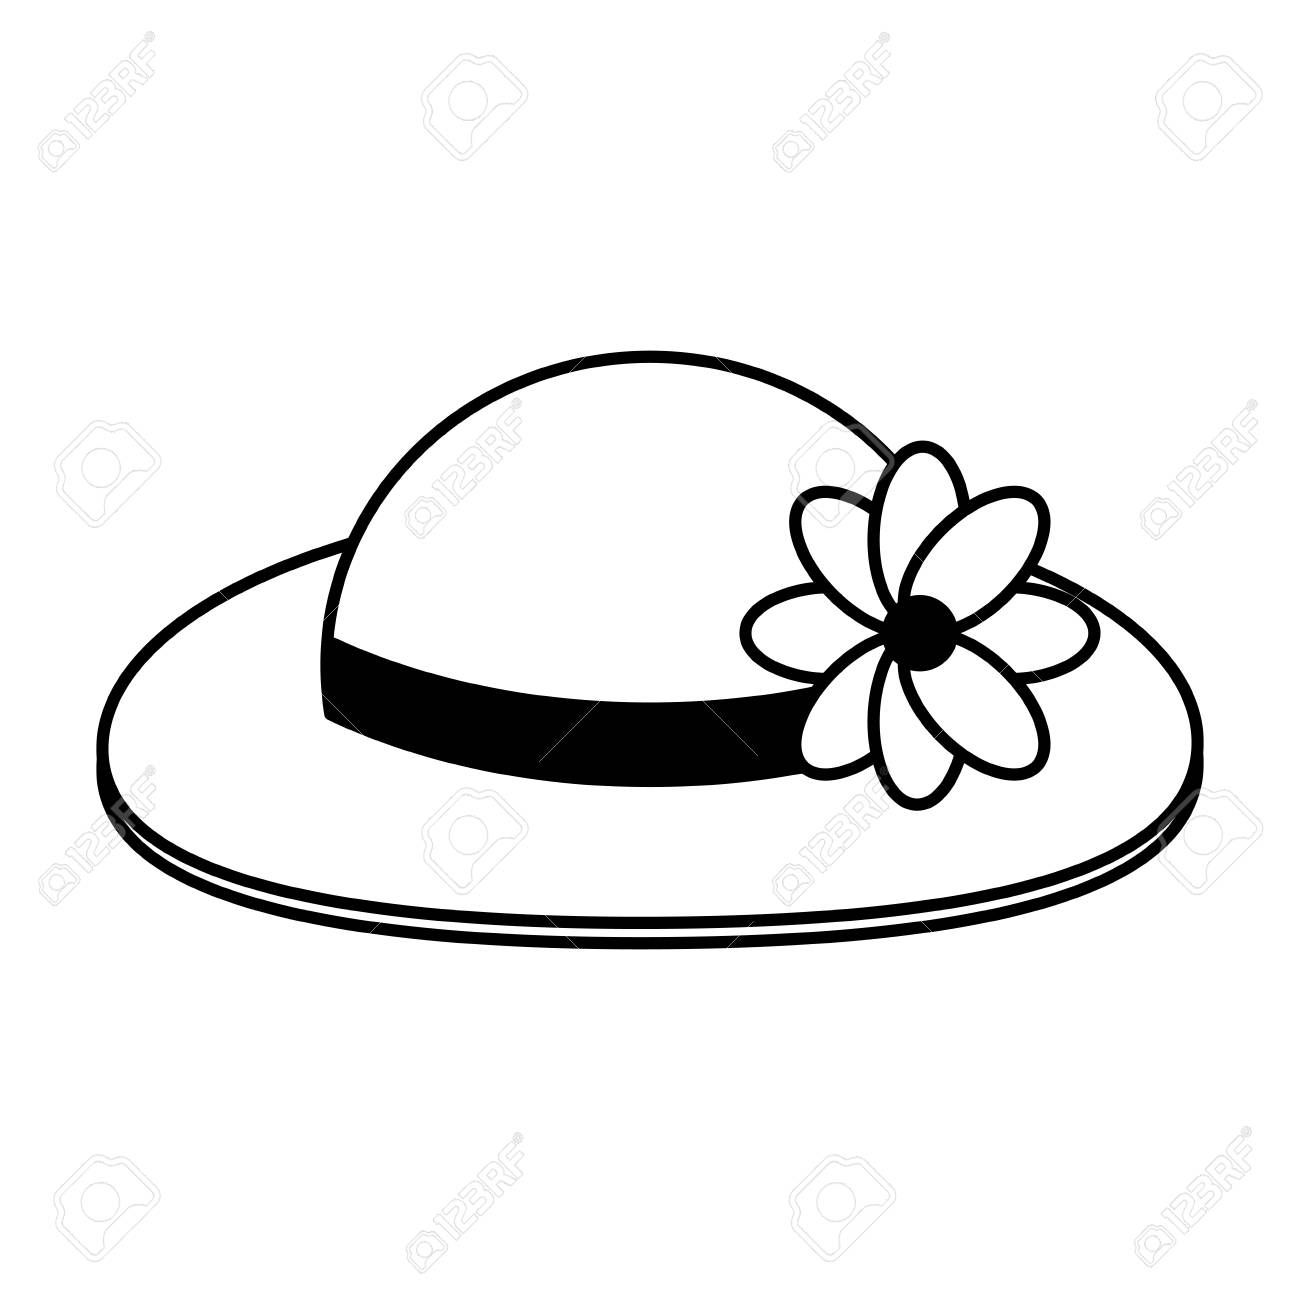 Hat Clipart Black And White Ideas Clipart Black And White Clip Art Black And White